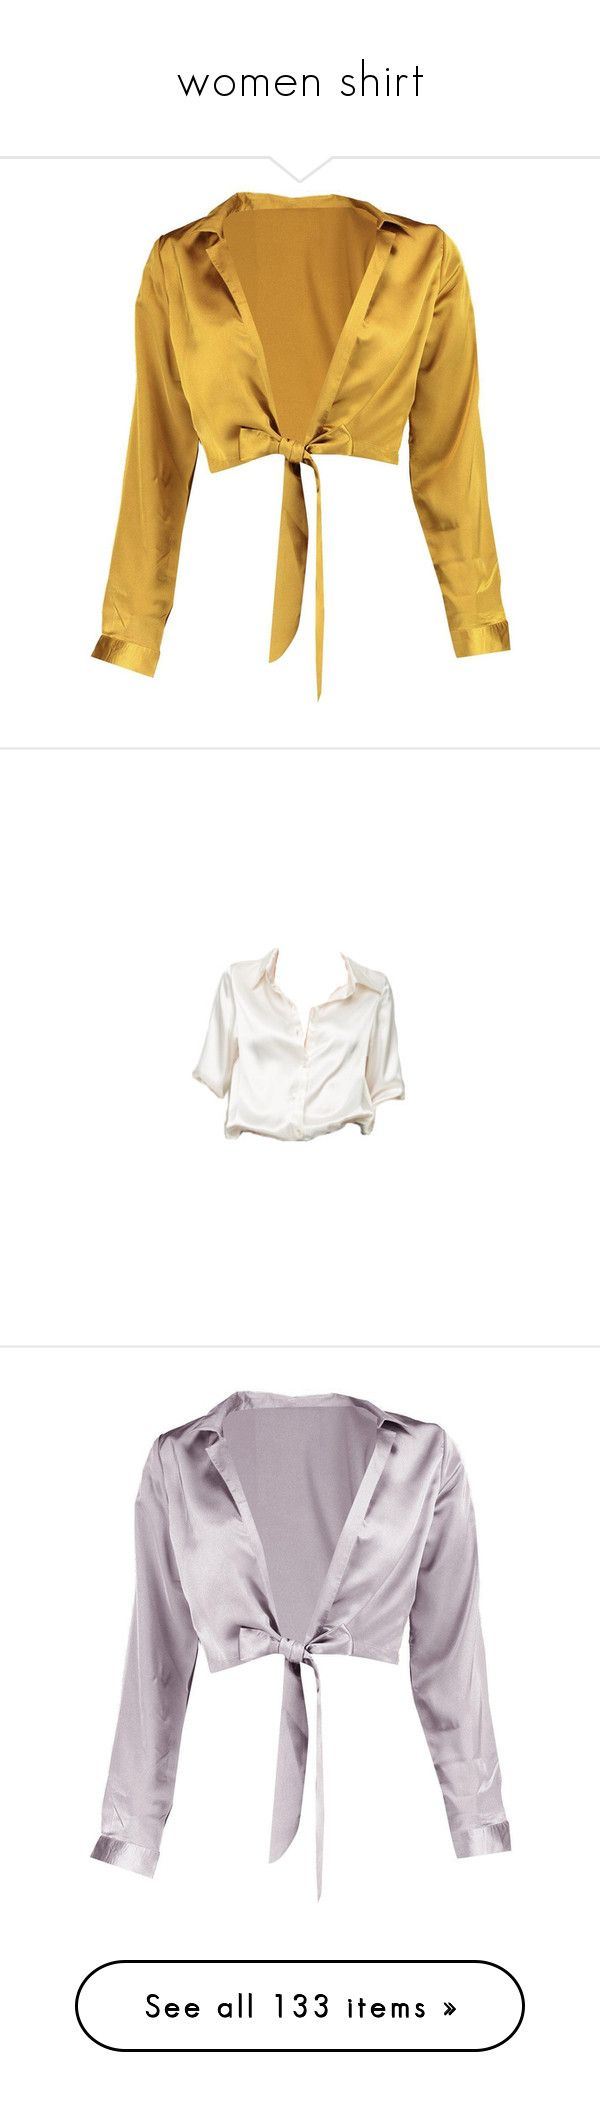 """women shirt"" by fashionbavyblue ❤ liked on Polyvore featuring tops, blouses, shirts, crop tops, petite tops, shirt blouse, shirt crop top, tie front blouse, brown blouse and crop top"